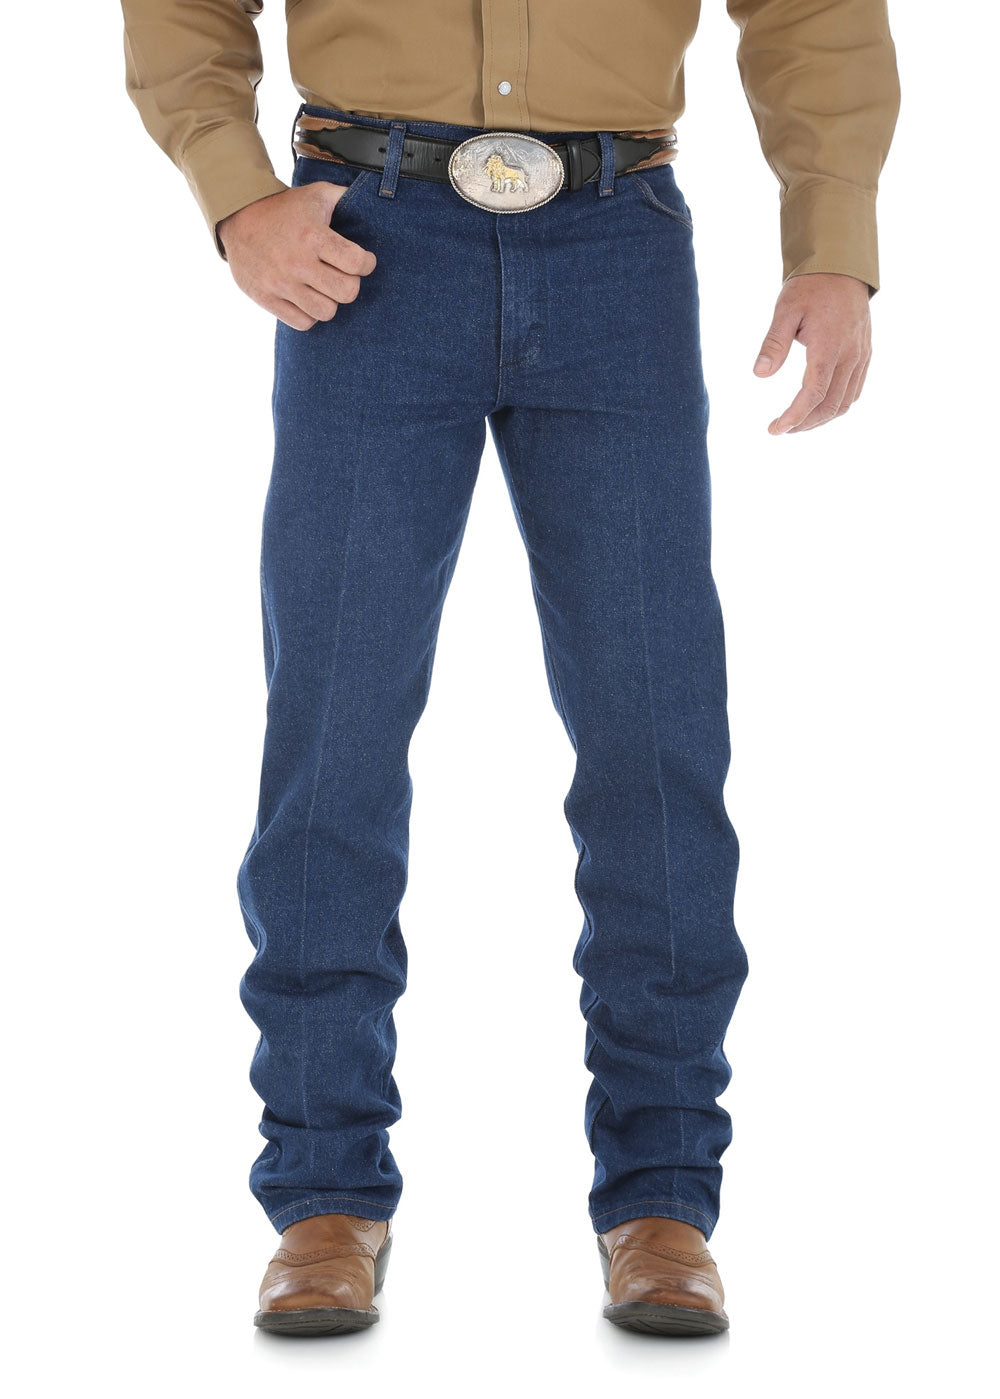 MENS COWBOY CUT ORIGINAL FIT JEAN 32